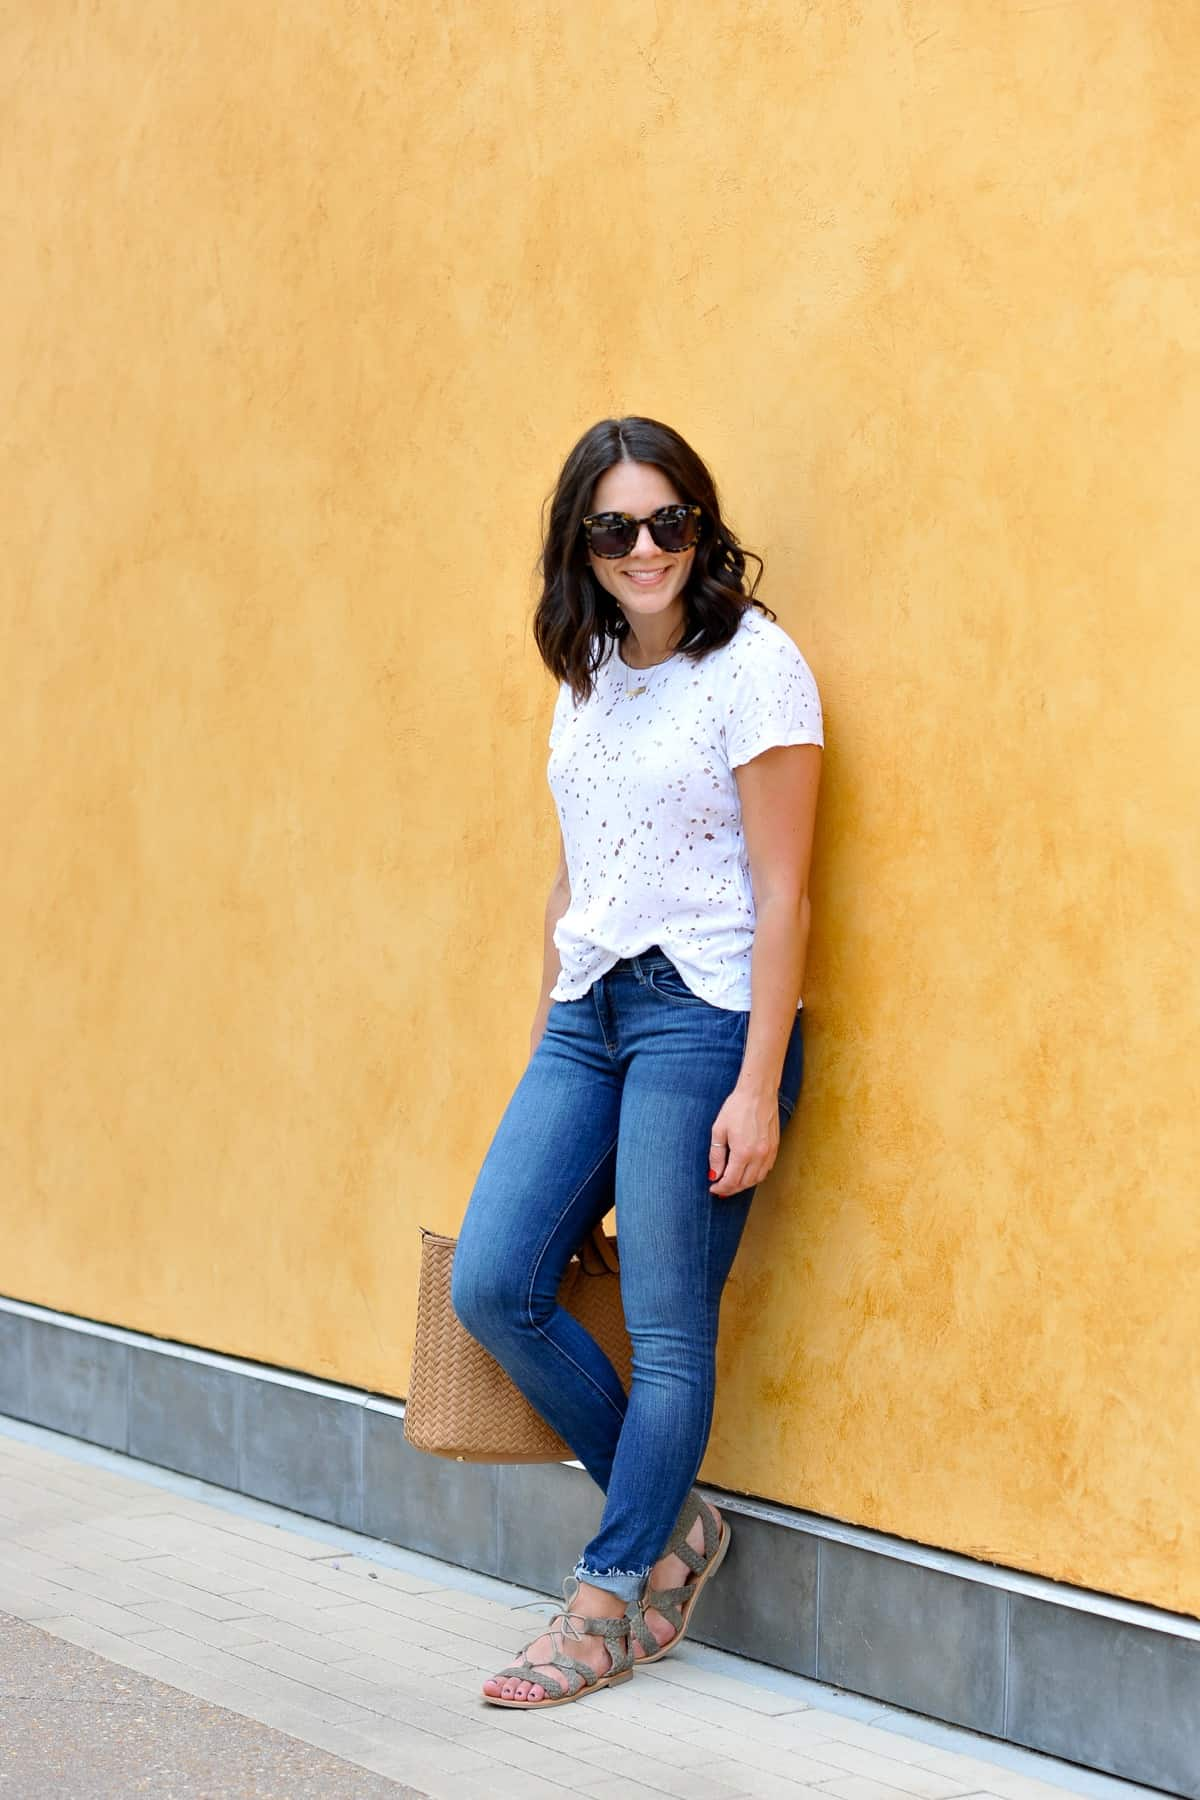 Casual summer outfit ideas - My Style Vita @mystylevita - 4